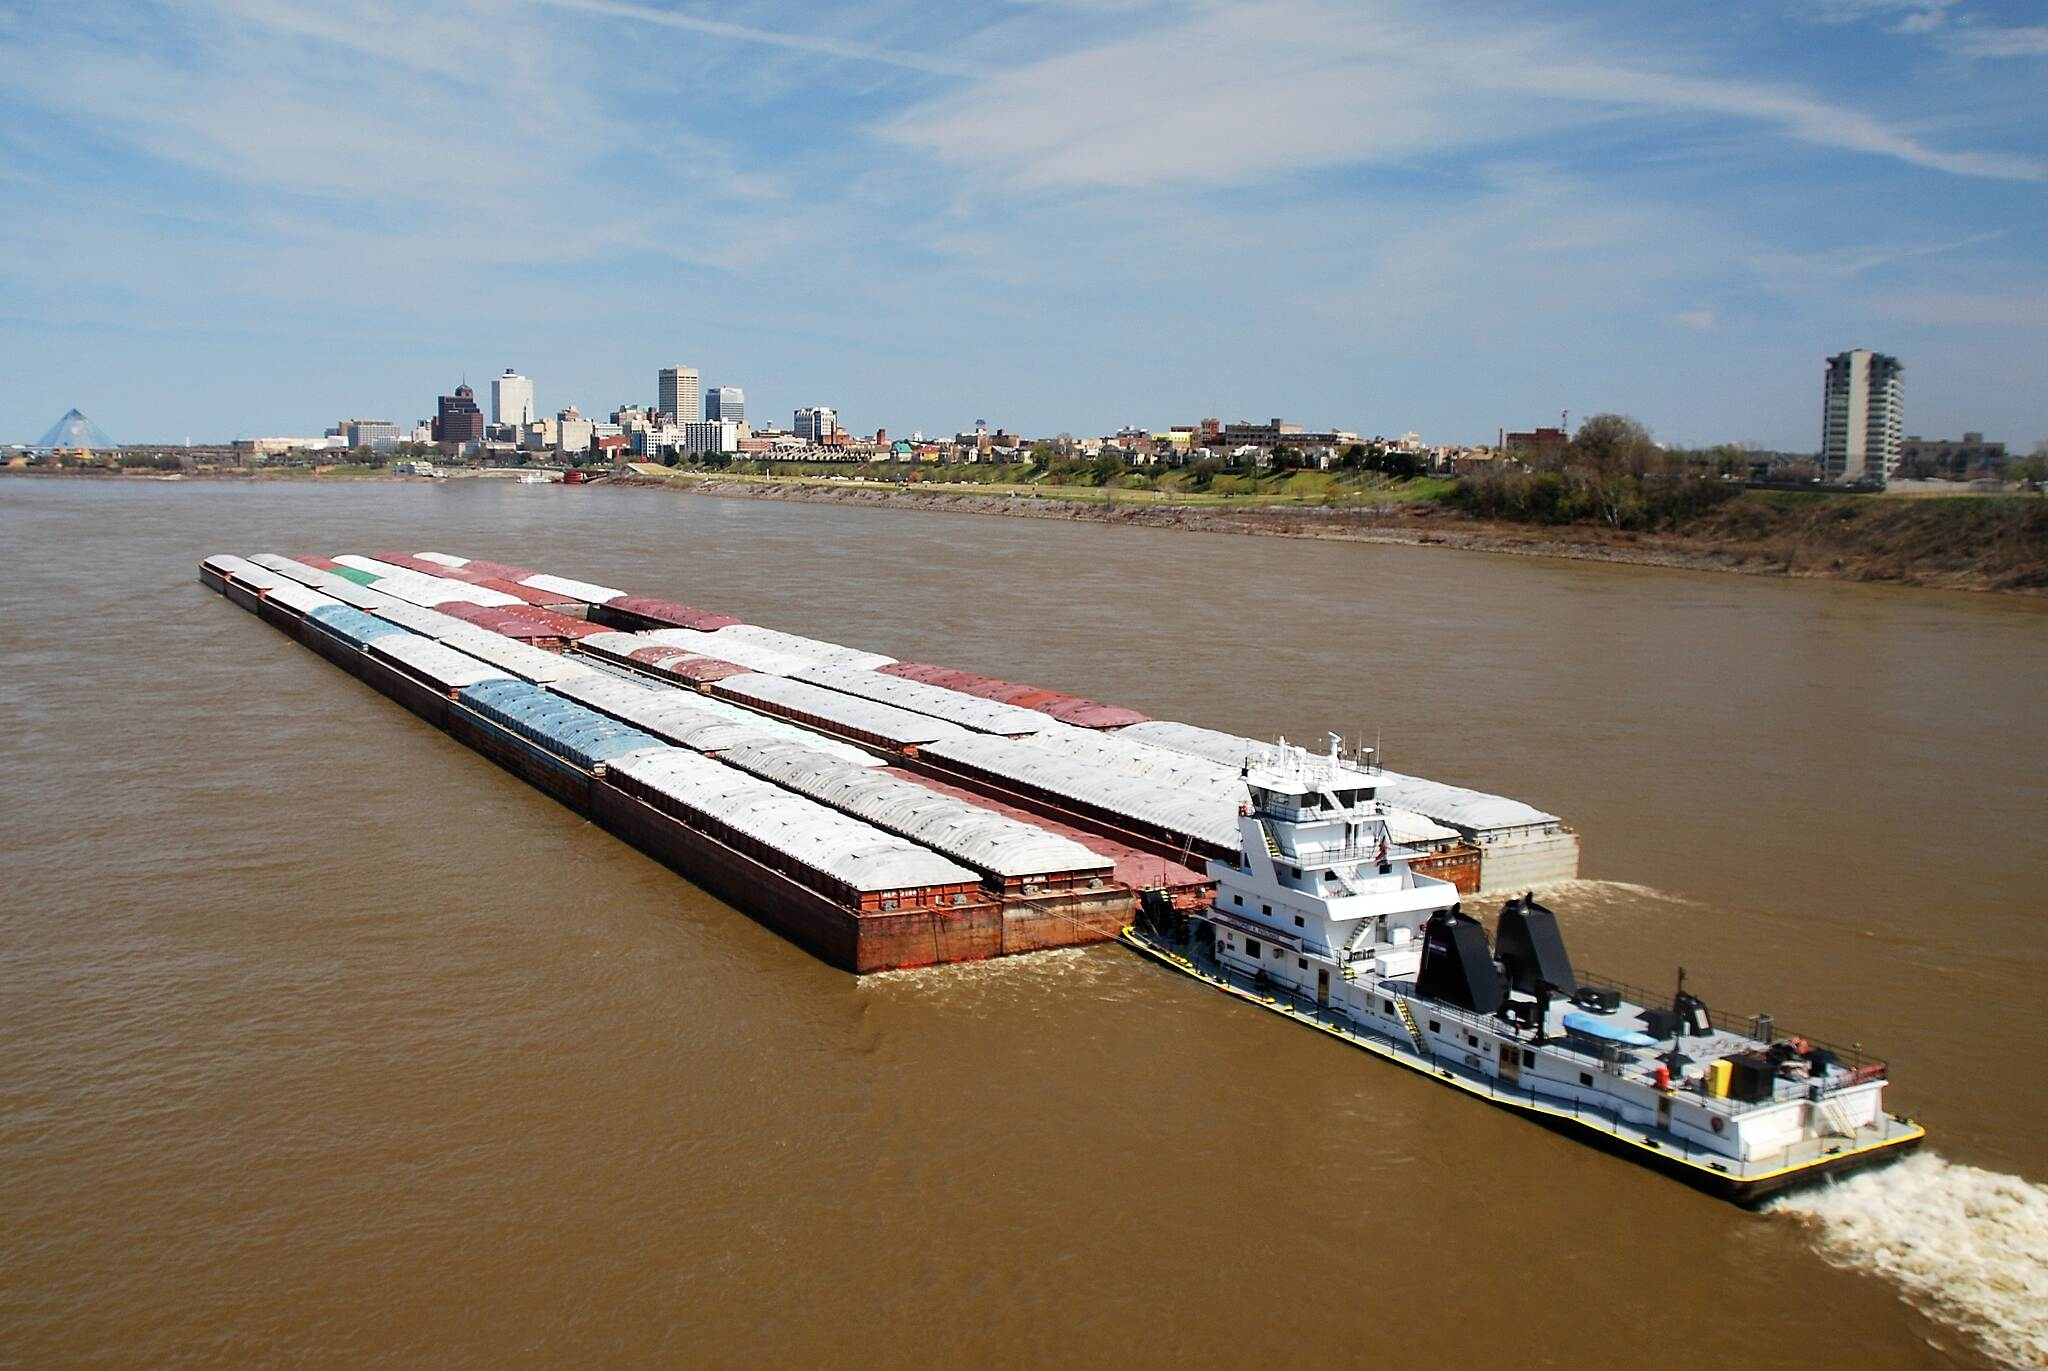 Big River Crossing Barge on the Mississippi There were several barges going up the river.